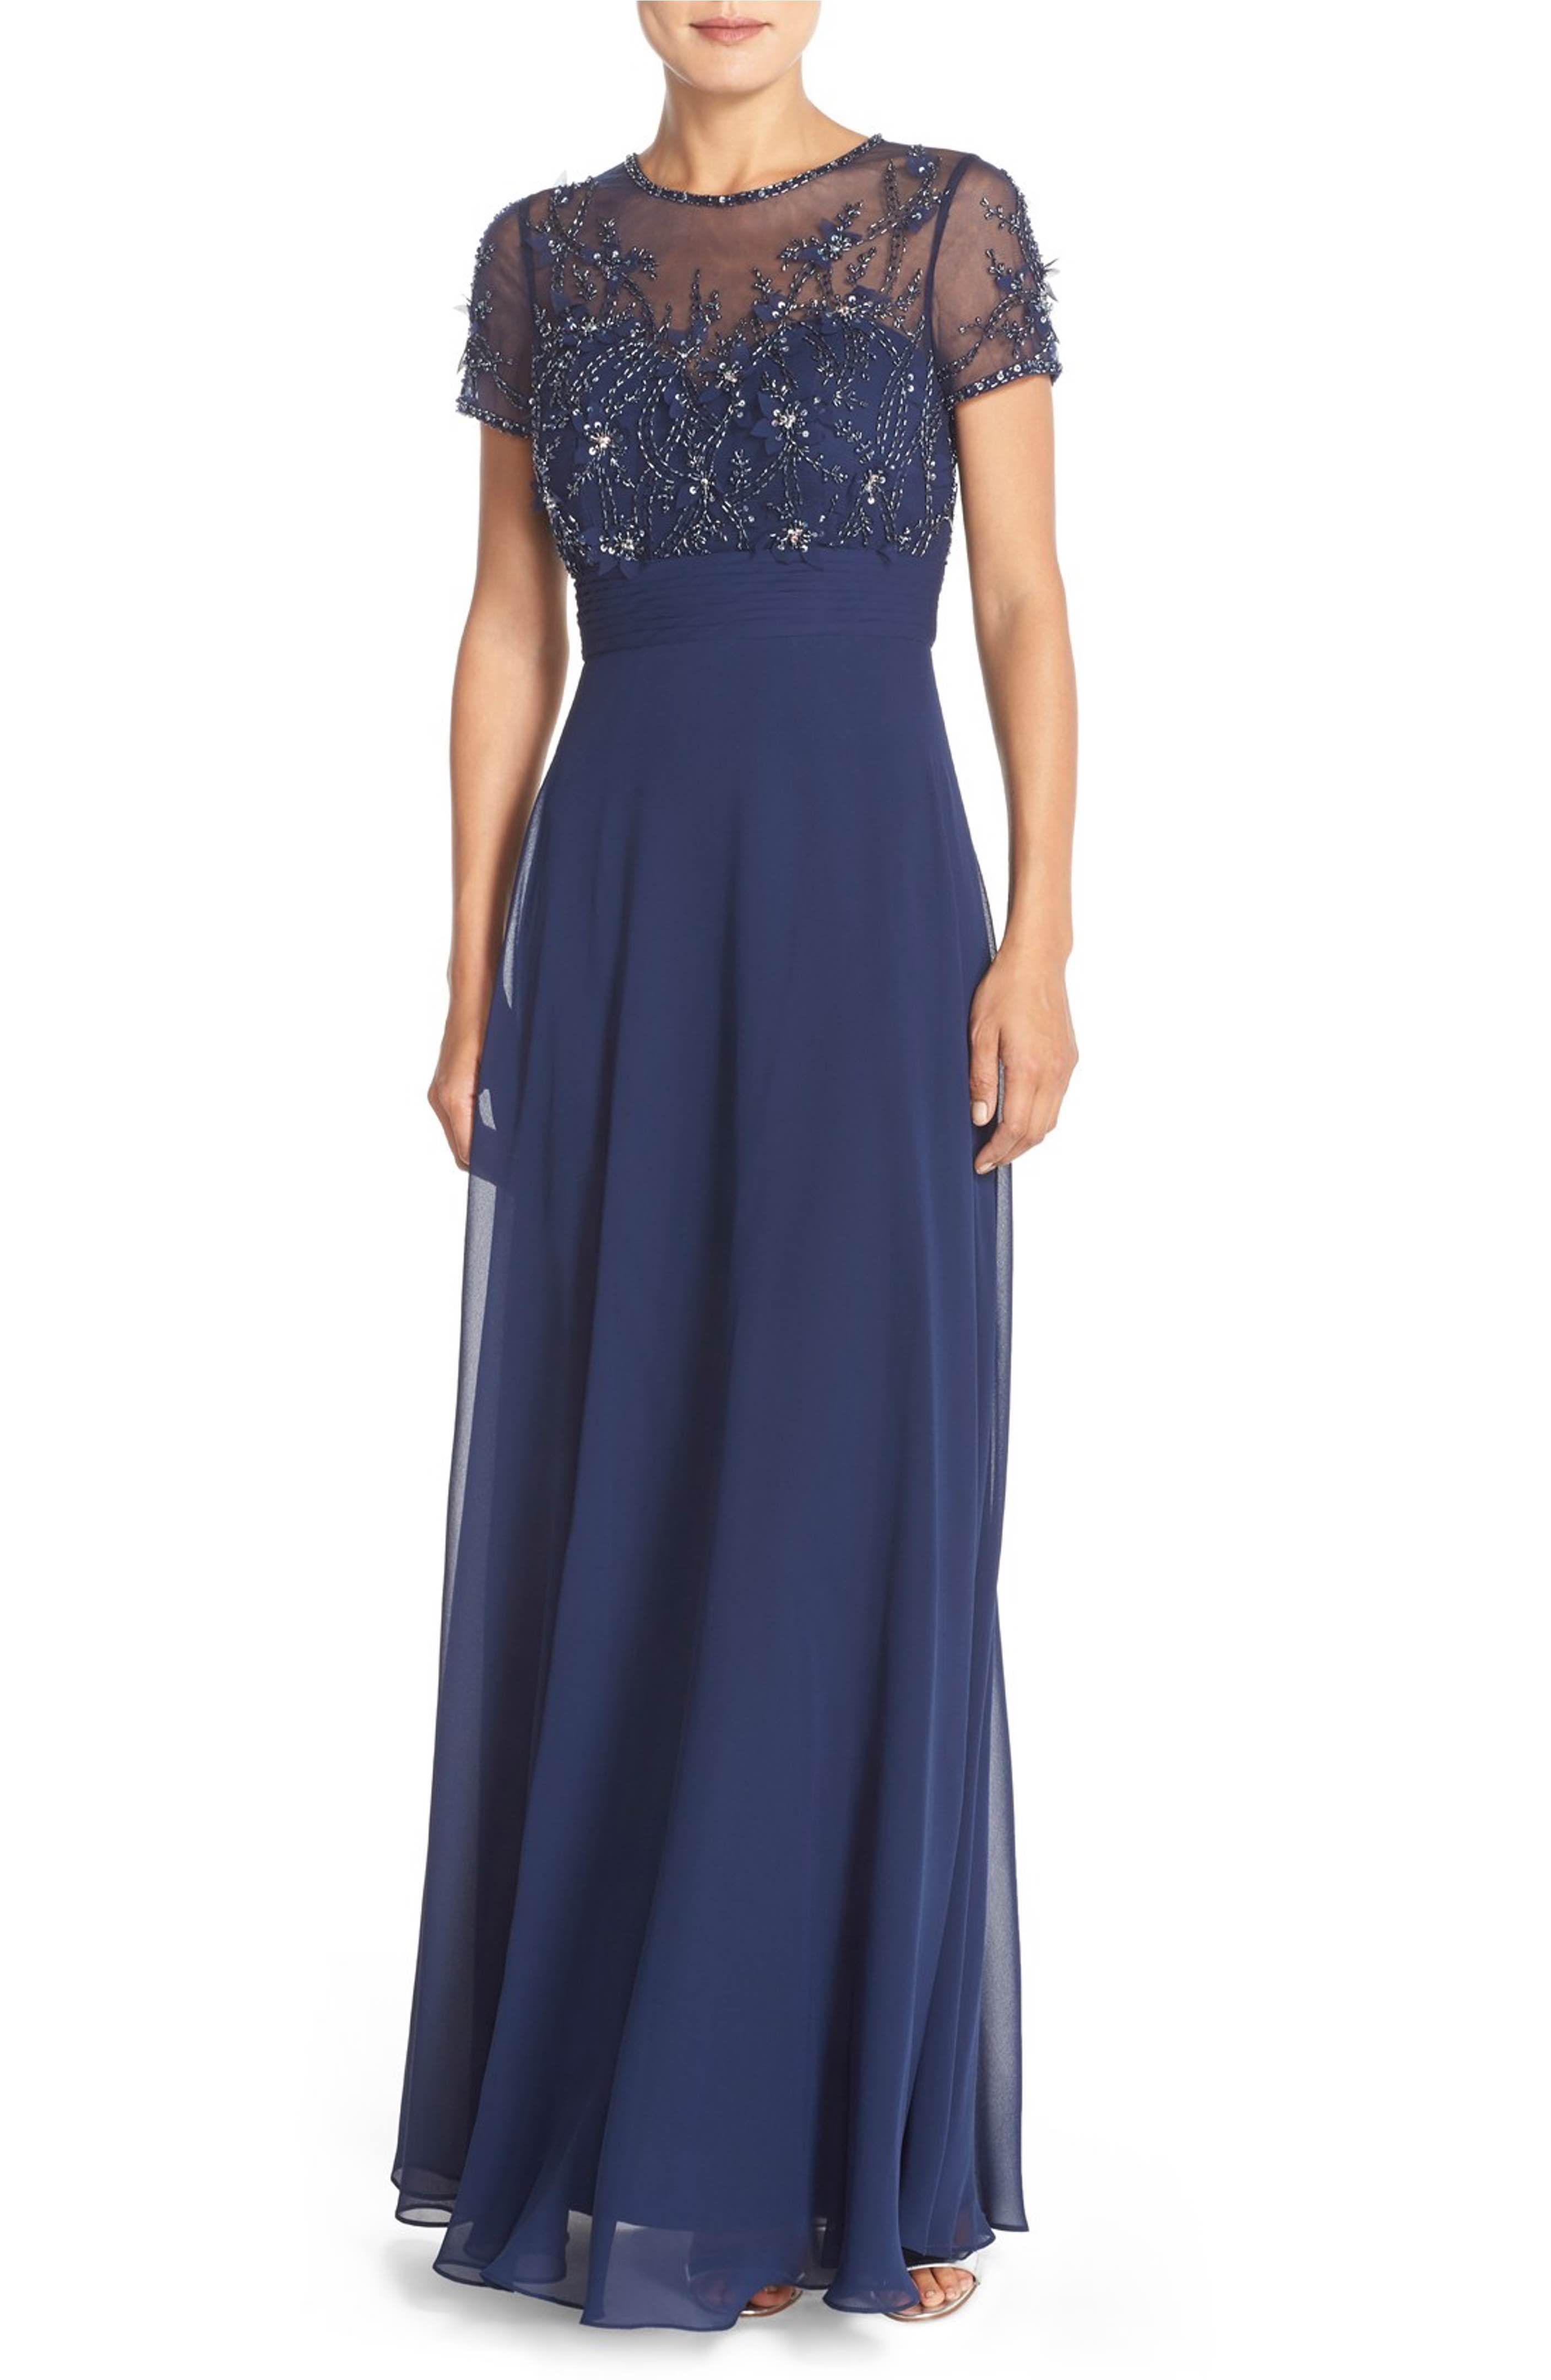 Main image js collections embellished mesh u chiffon gown mob